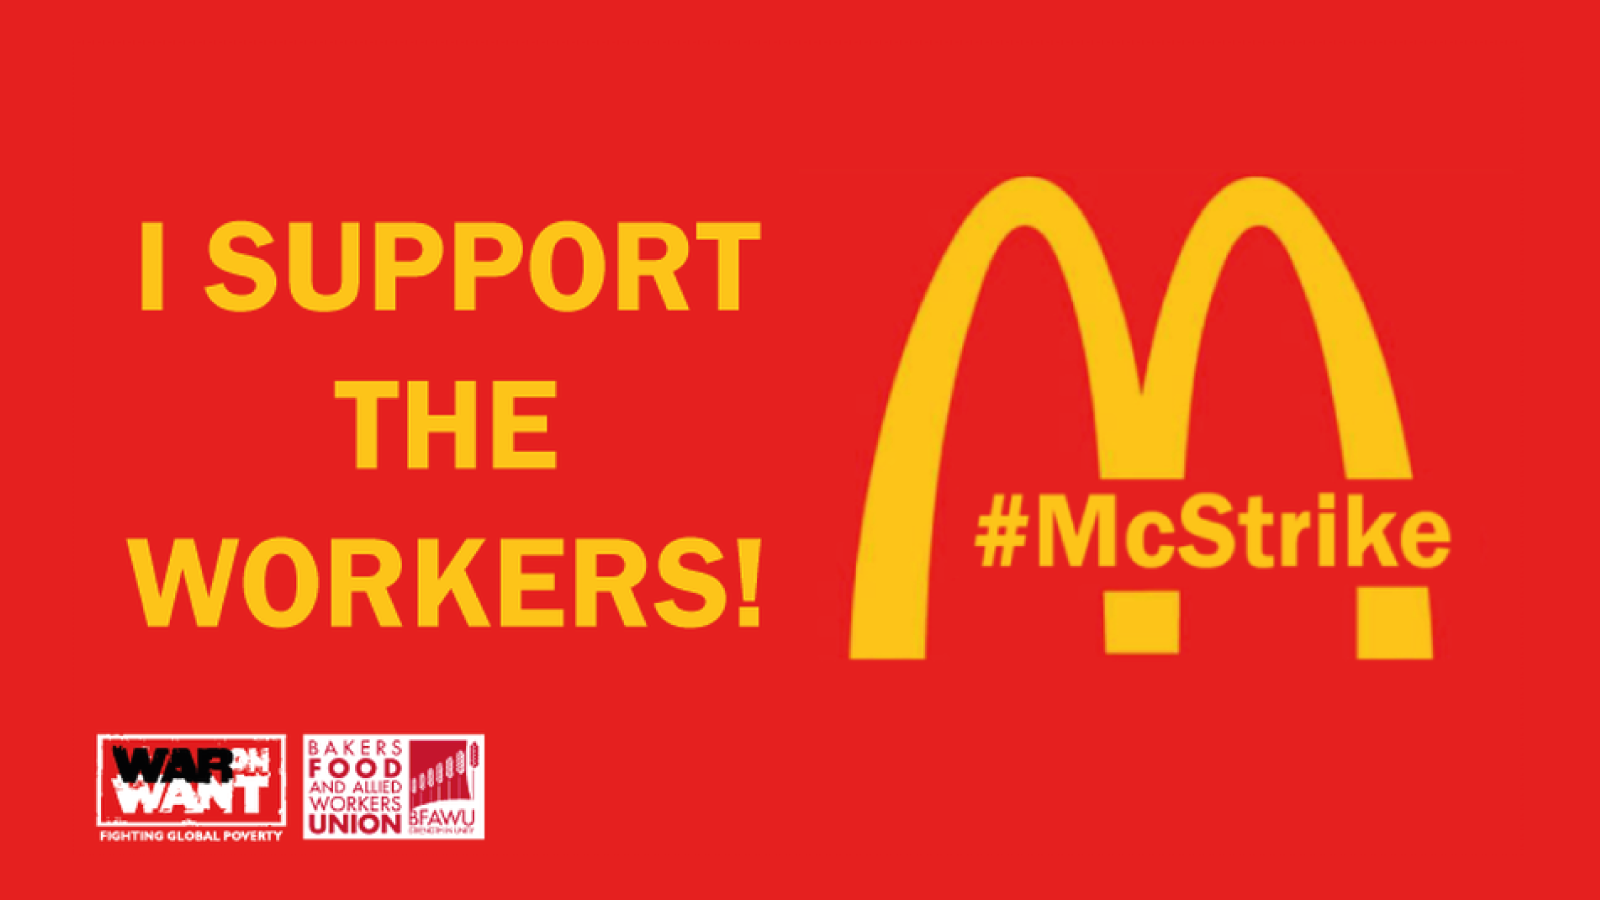 Support the #McStrike - Find an event near you!